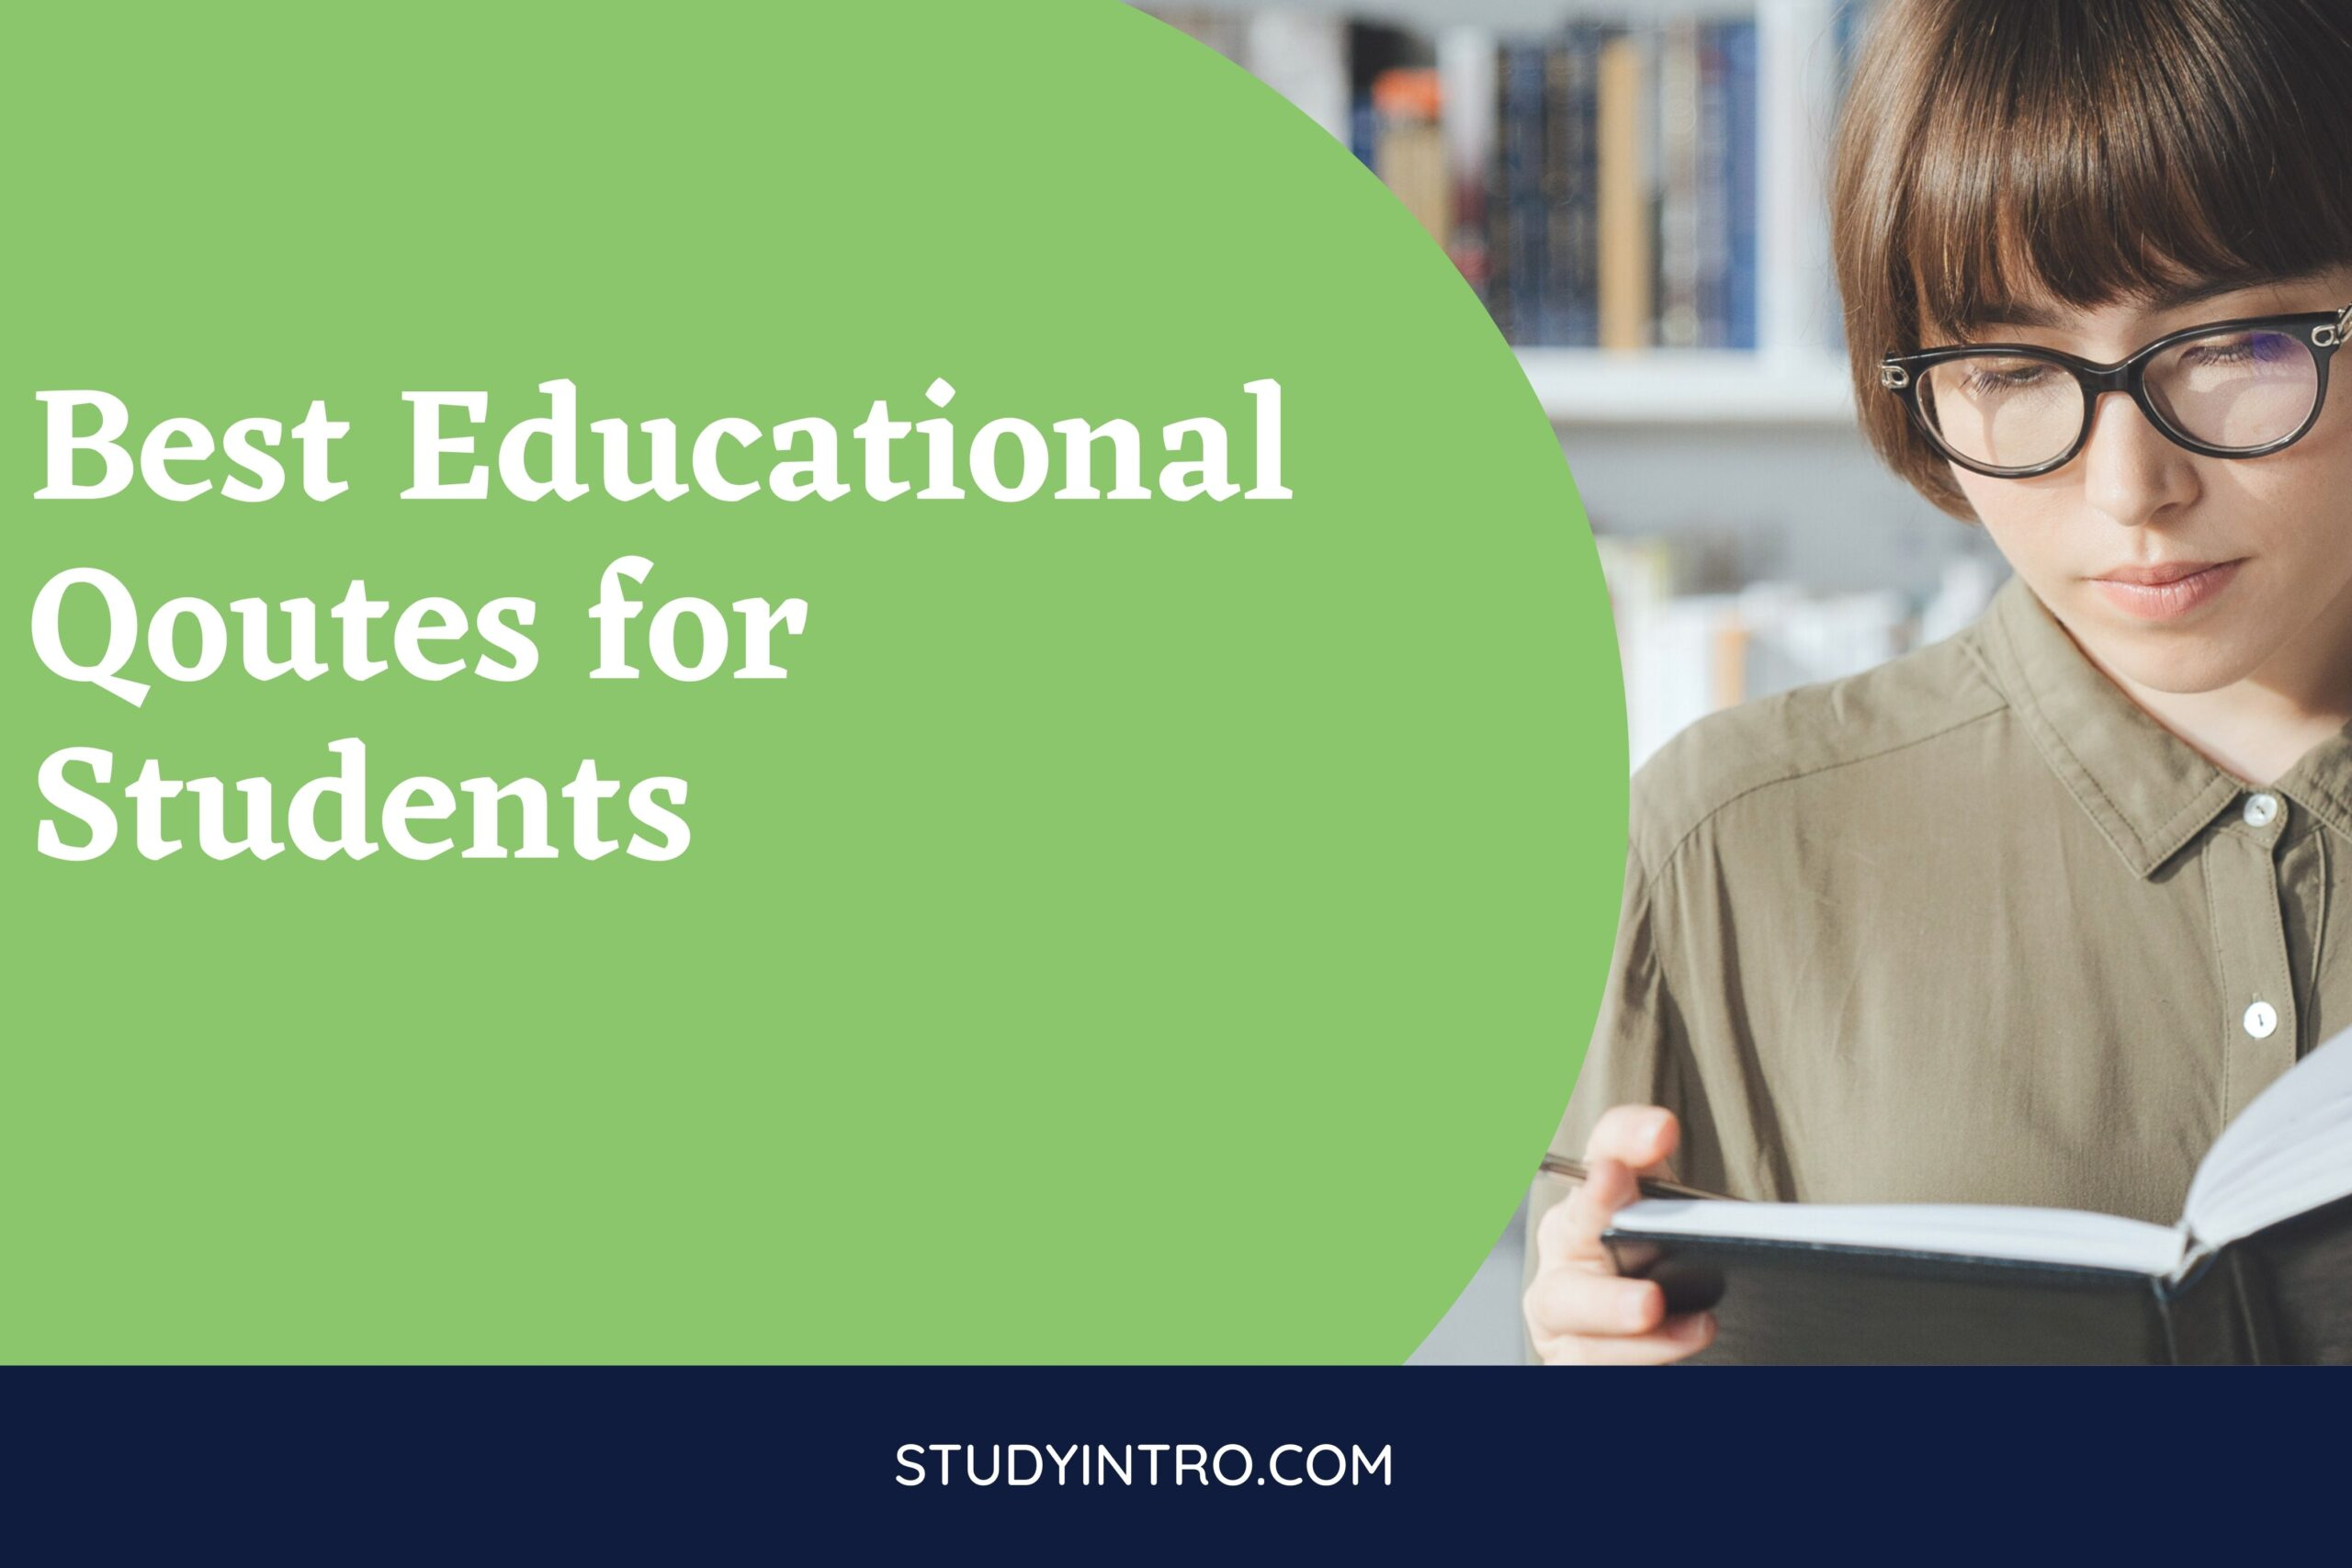 Best Educational Quotes for Students